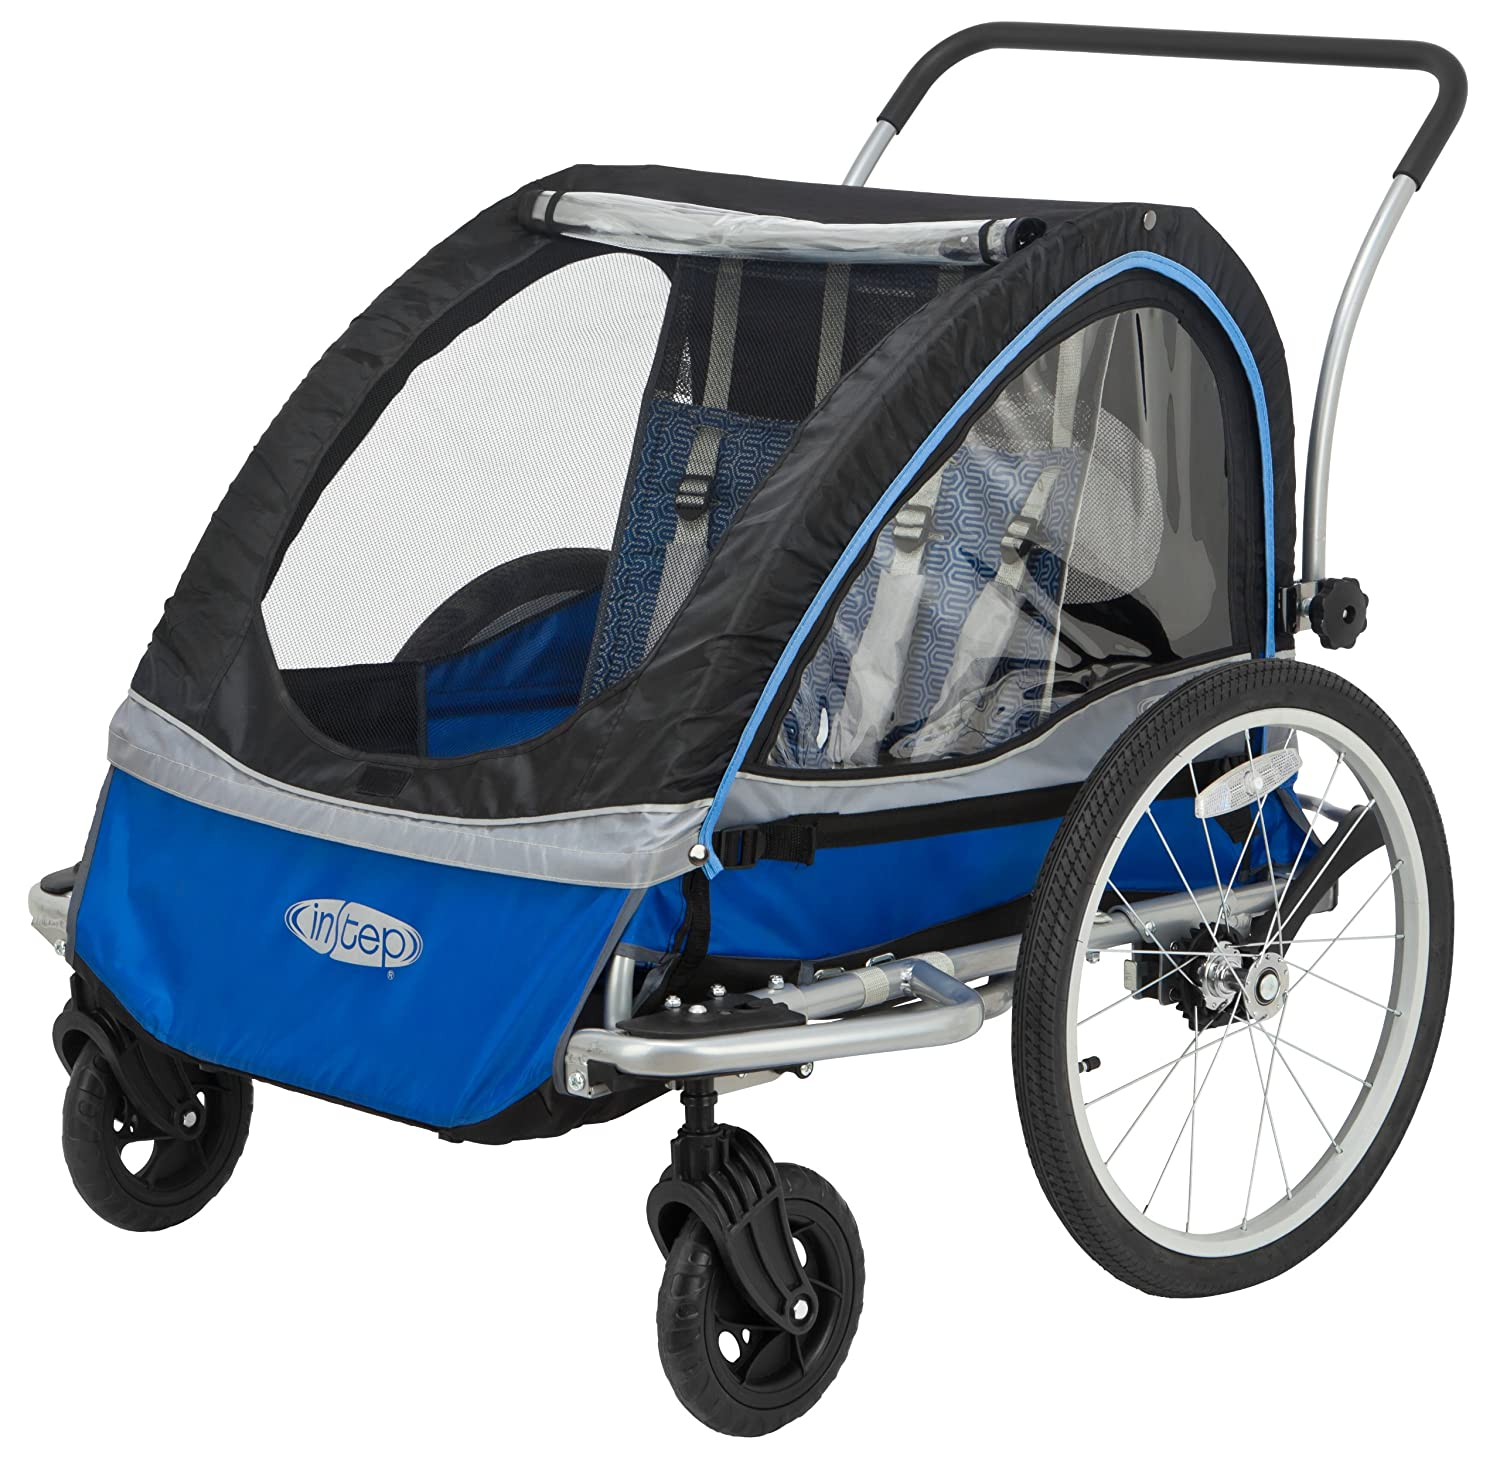 Amazon.com : InStep Rocket 11 Bicycle Trailer, Blue/Black, Blue ...